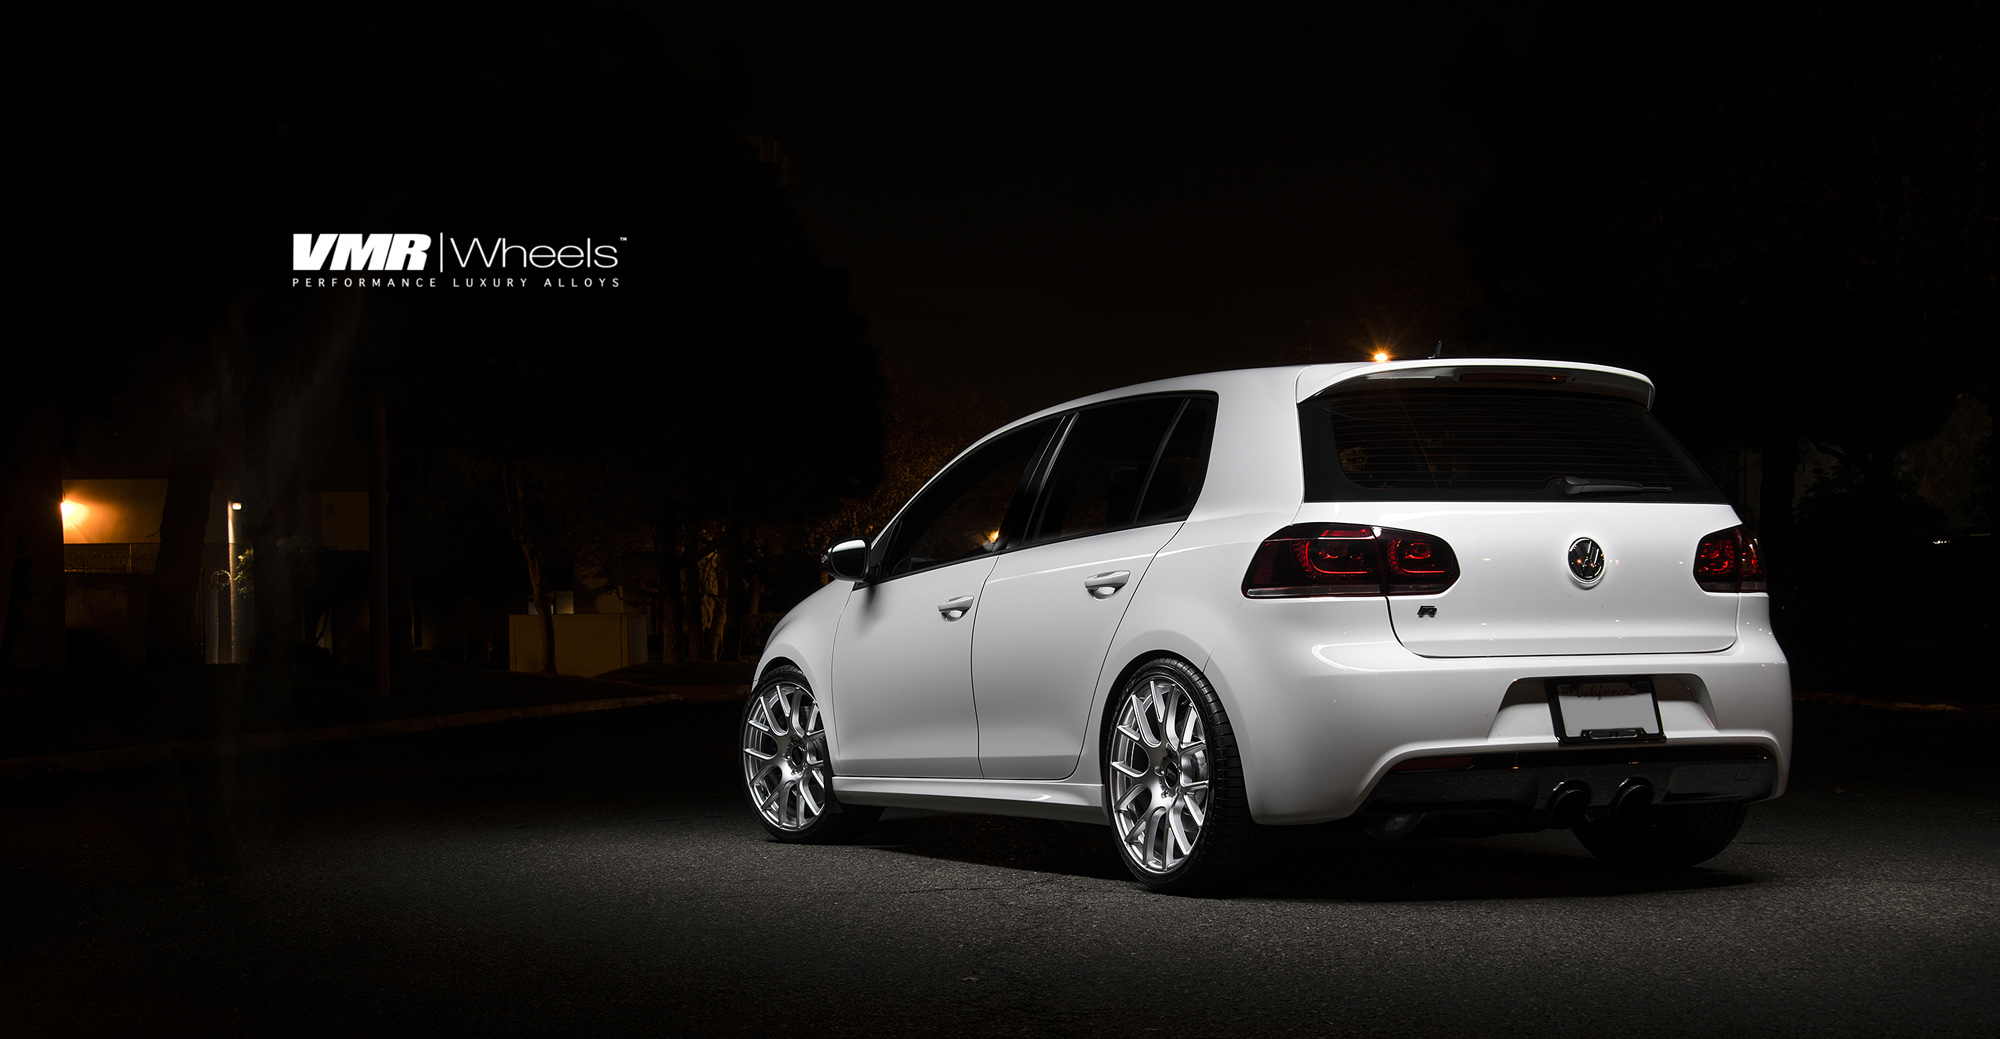 5 Best Mods For Vw Golf Gti Mk 6 Modbargains Com S Blog